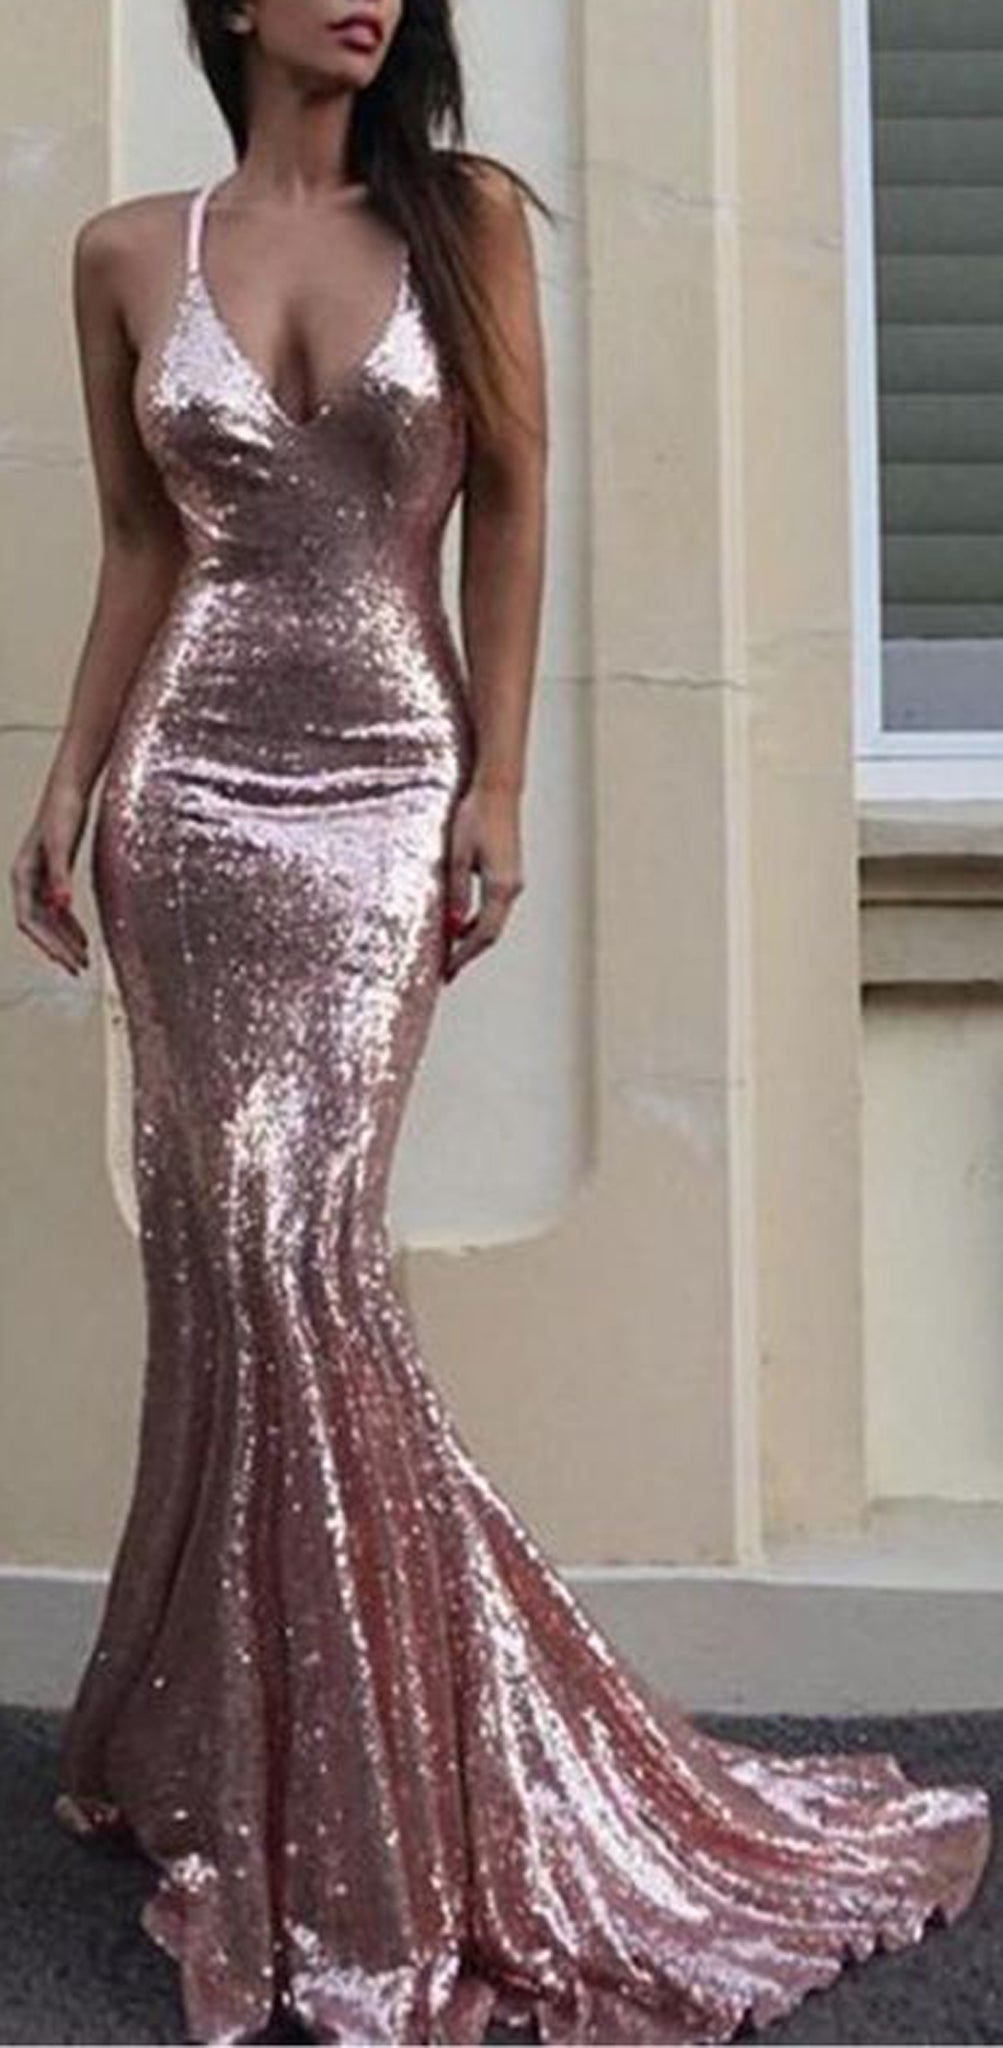 Fancy New Years Eve Outfit Ideas 2018 - Rose Gold Sequin Gown Mermaid Dresses - MyBodiArt.com